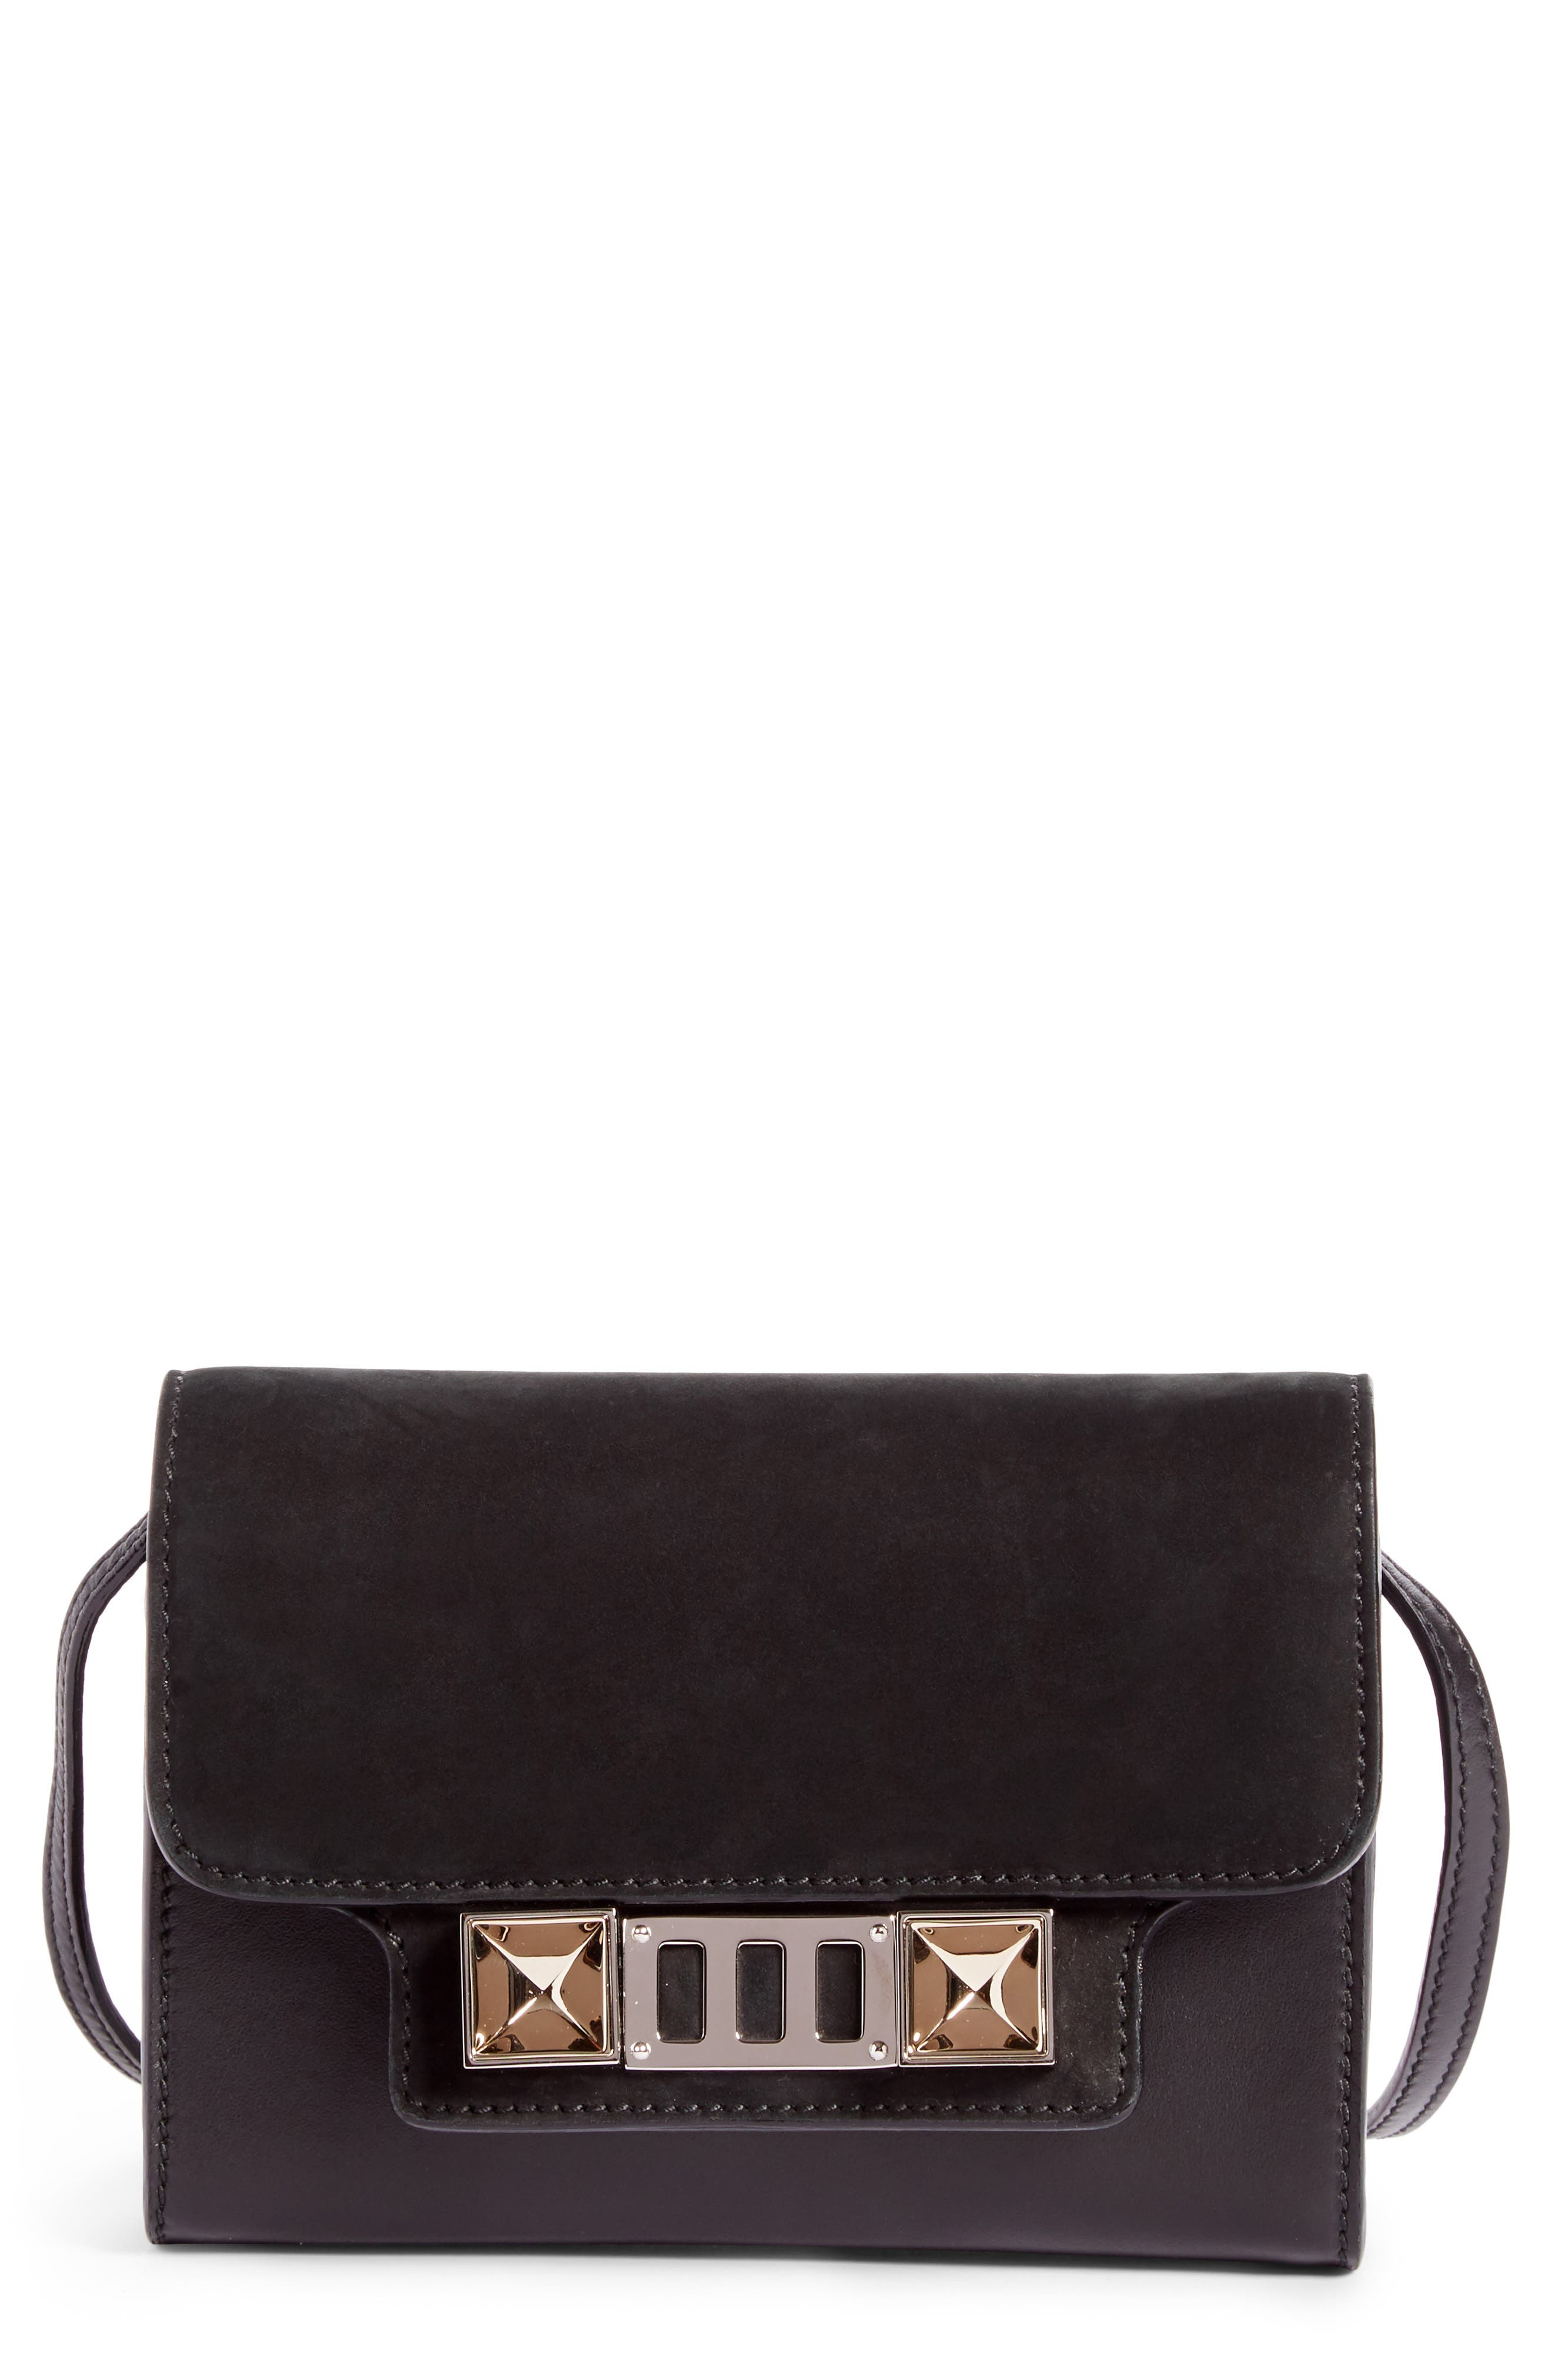 Proenza Schouler PS11 Calfskin Leather Crossbody Wallet